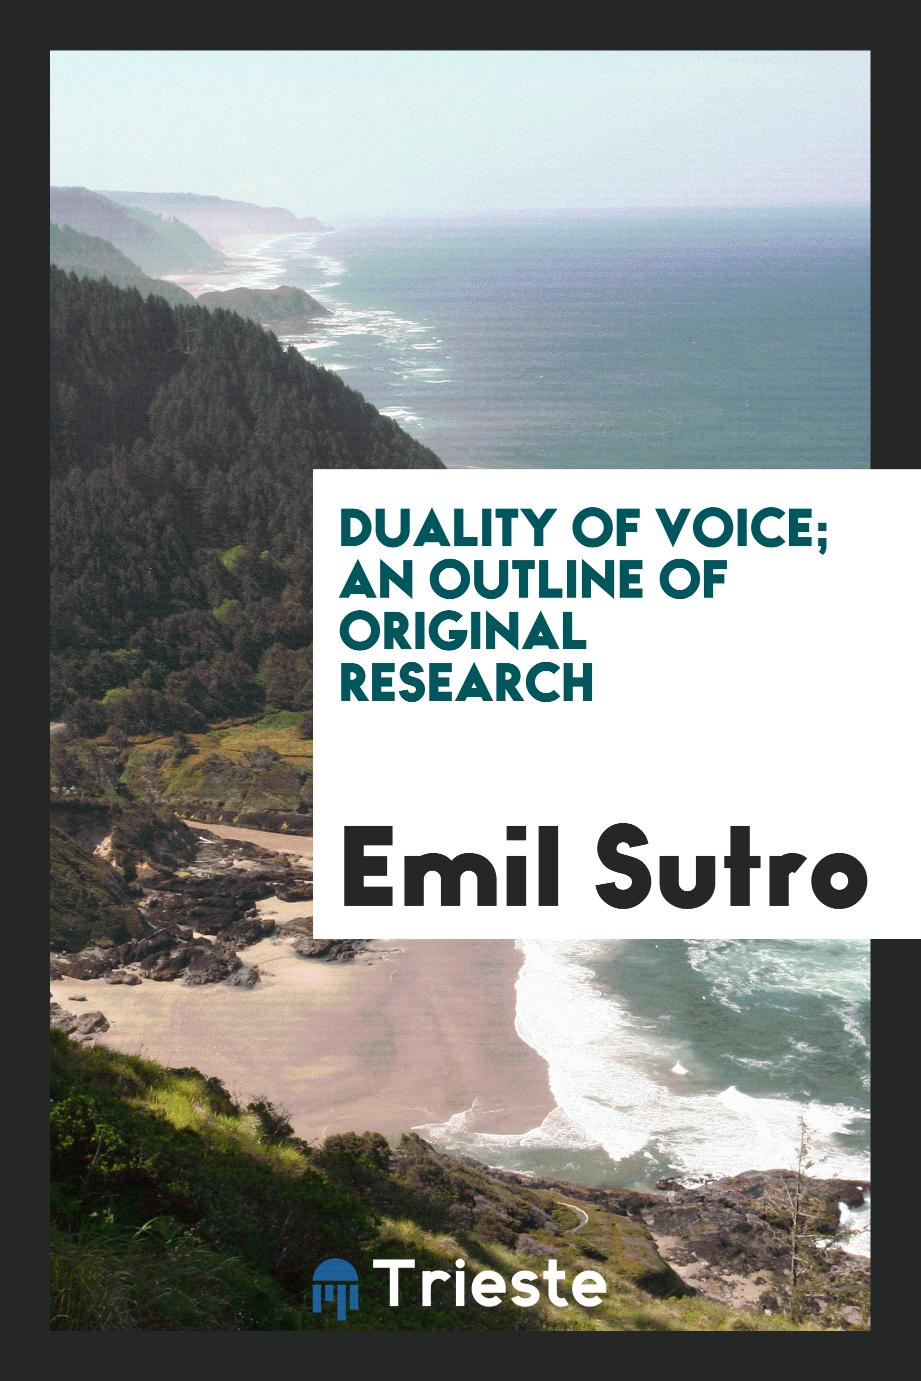 Duality of voice; an outline of original research